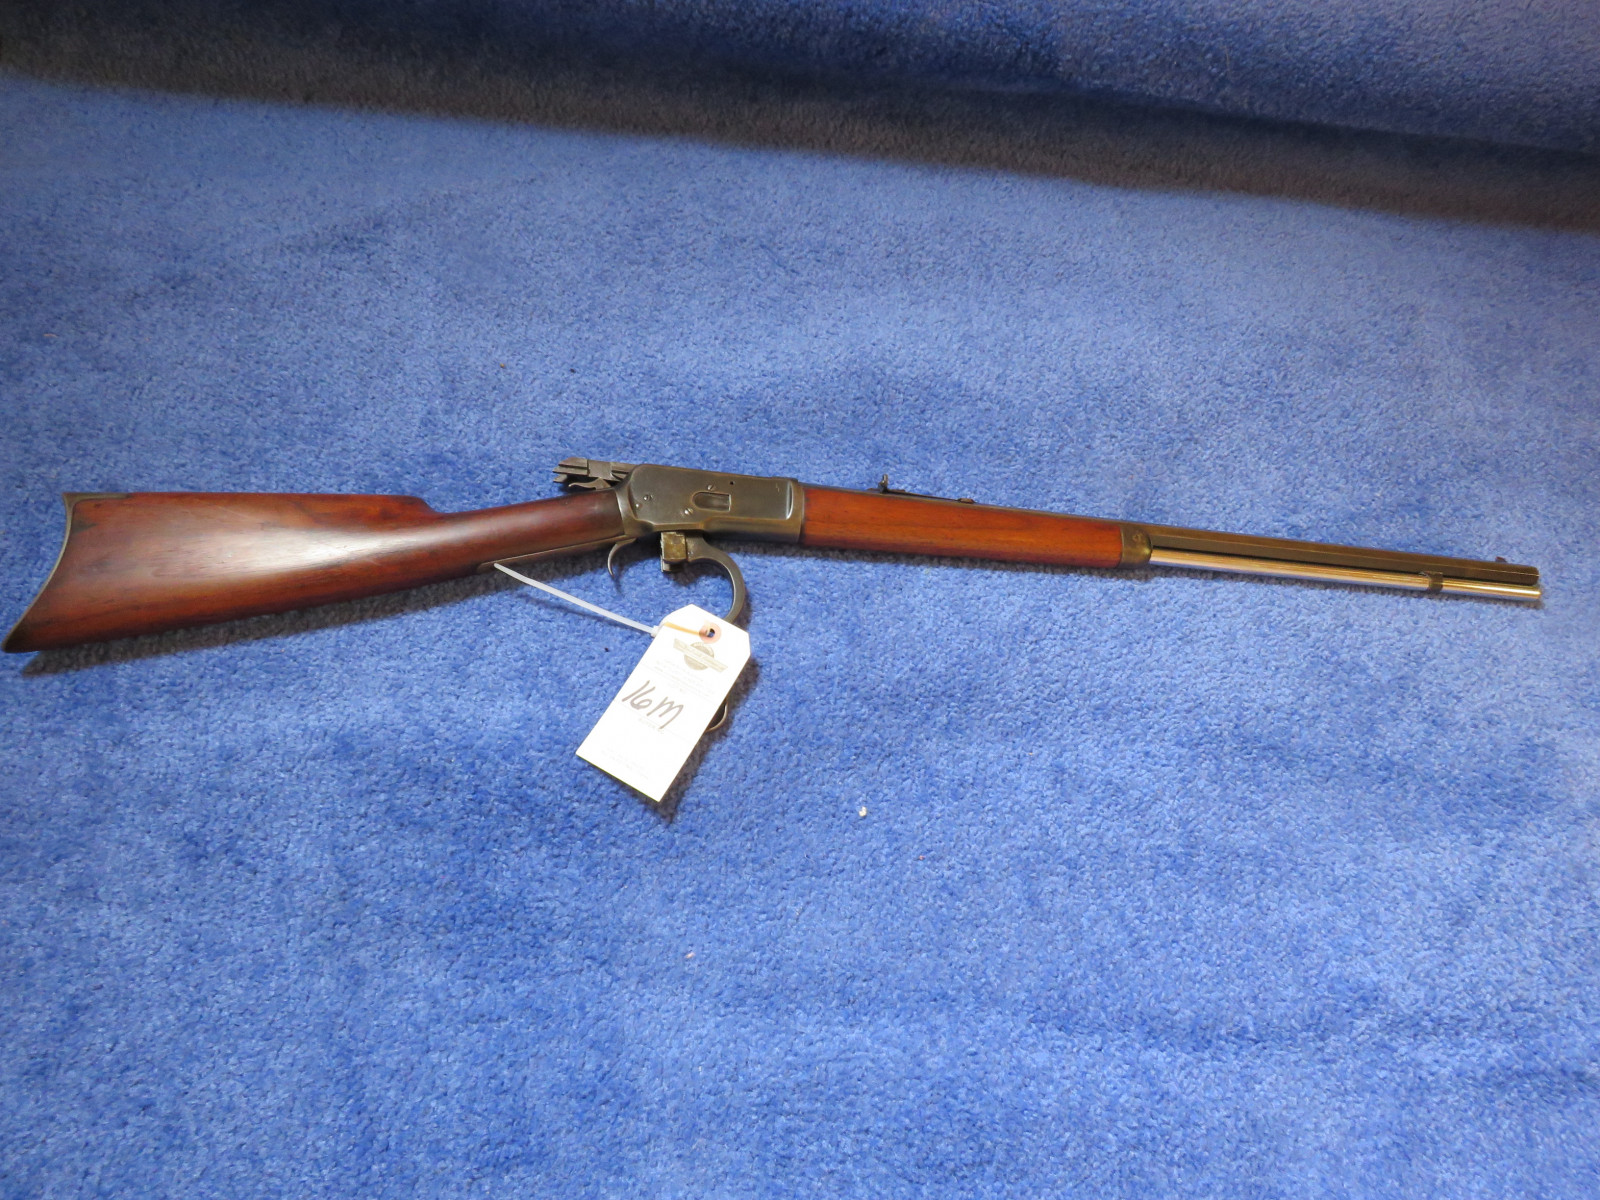 Winchester Model 1892 Lever Action Rifle - Image 1